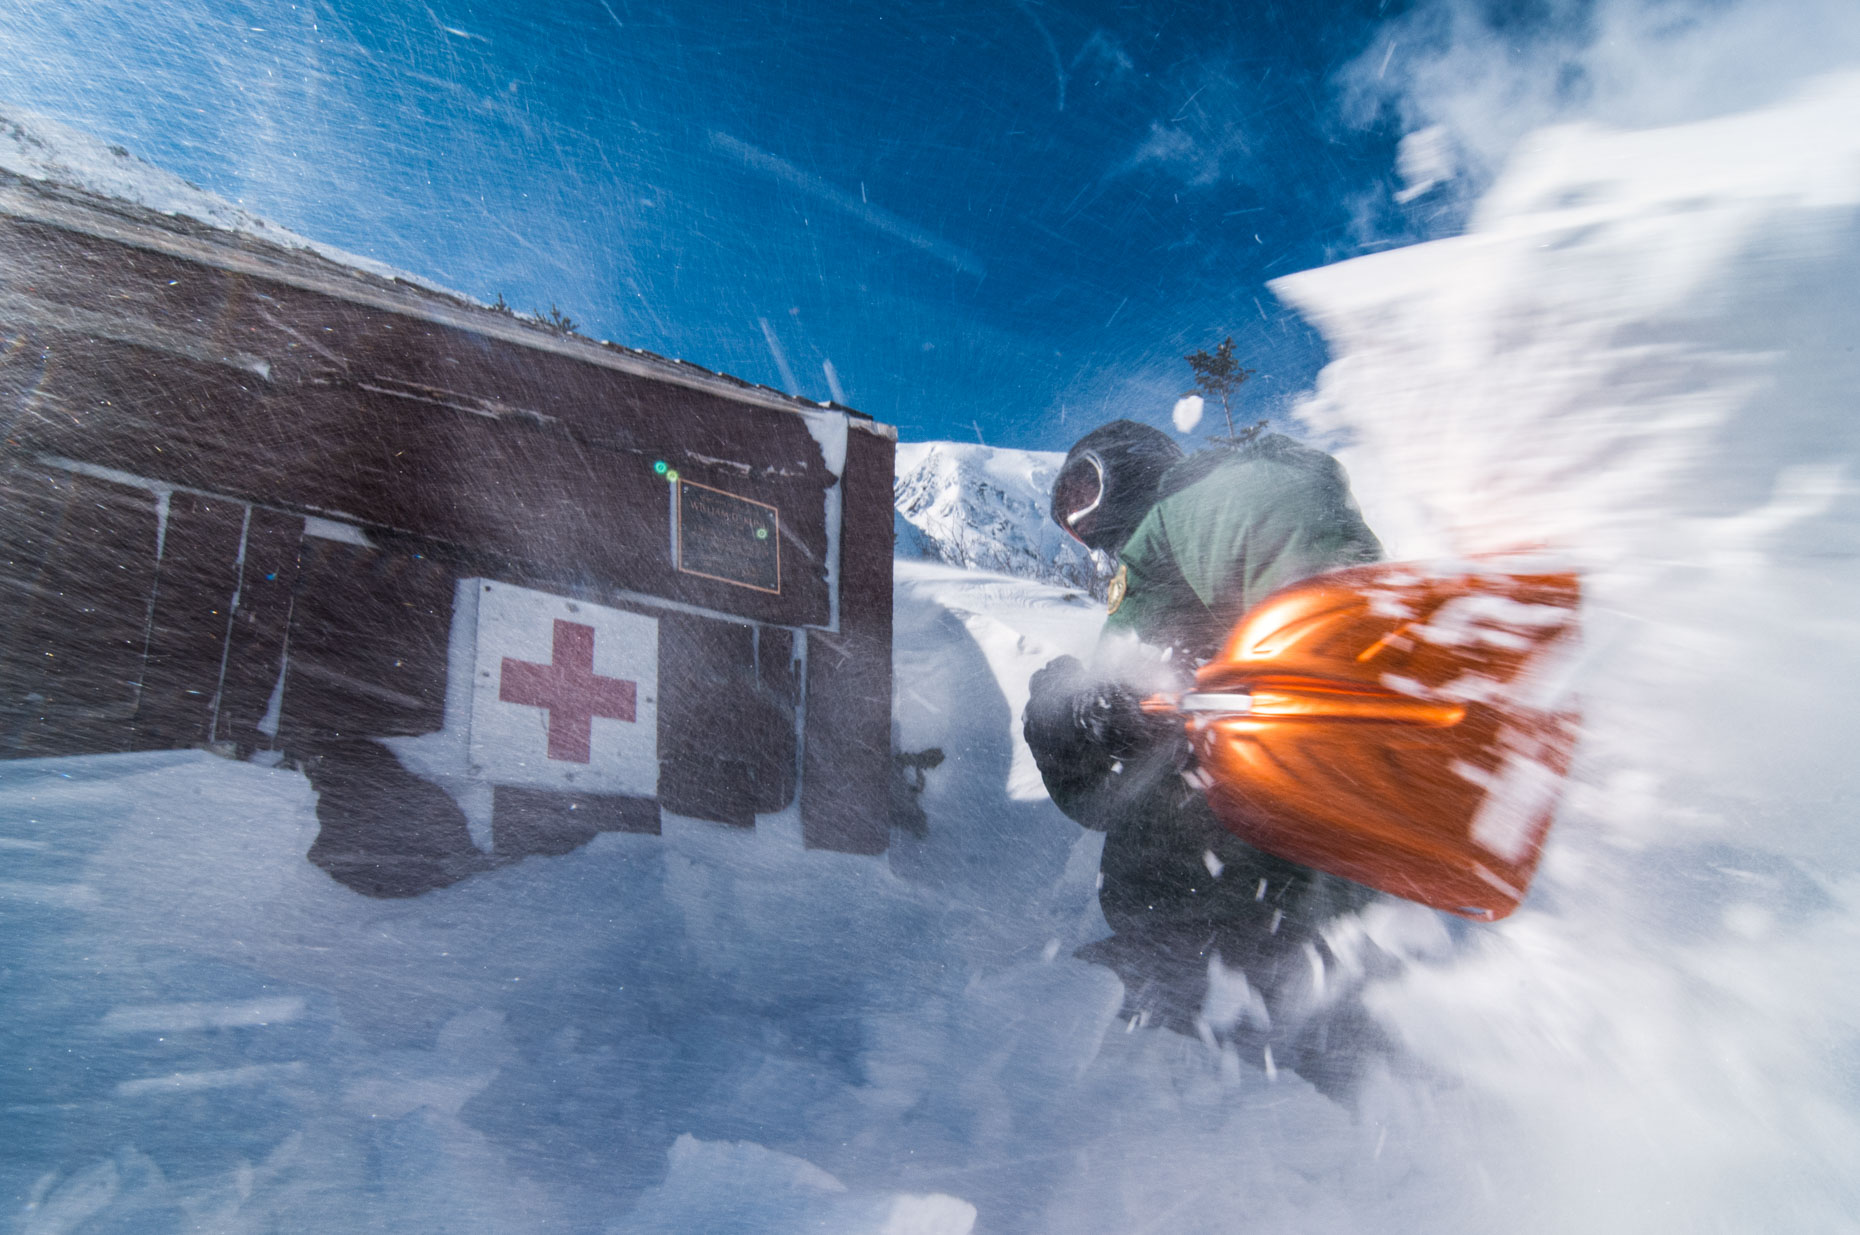 Shoveling out First aid cache